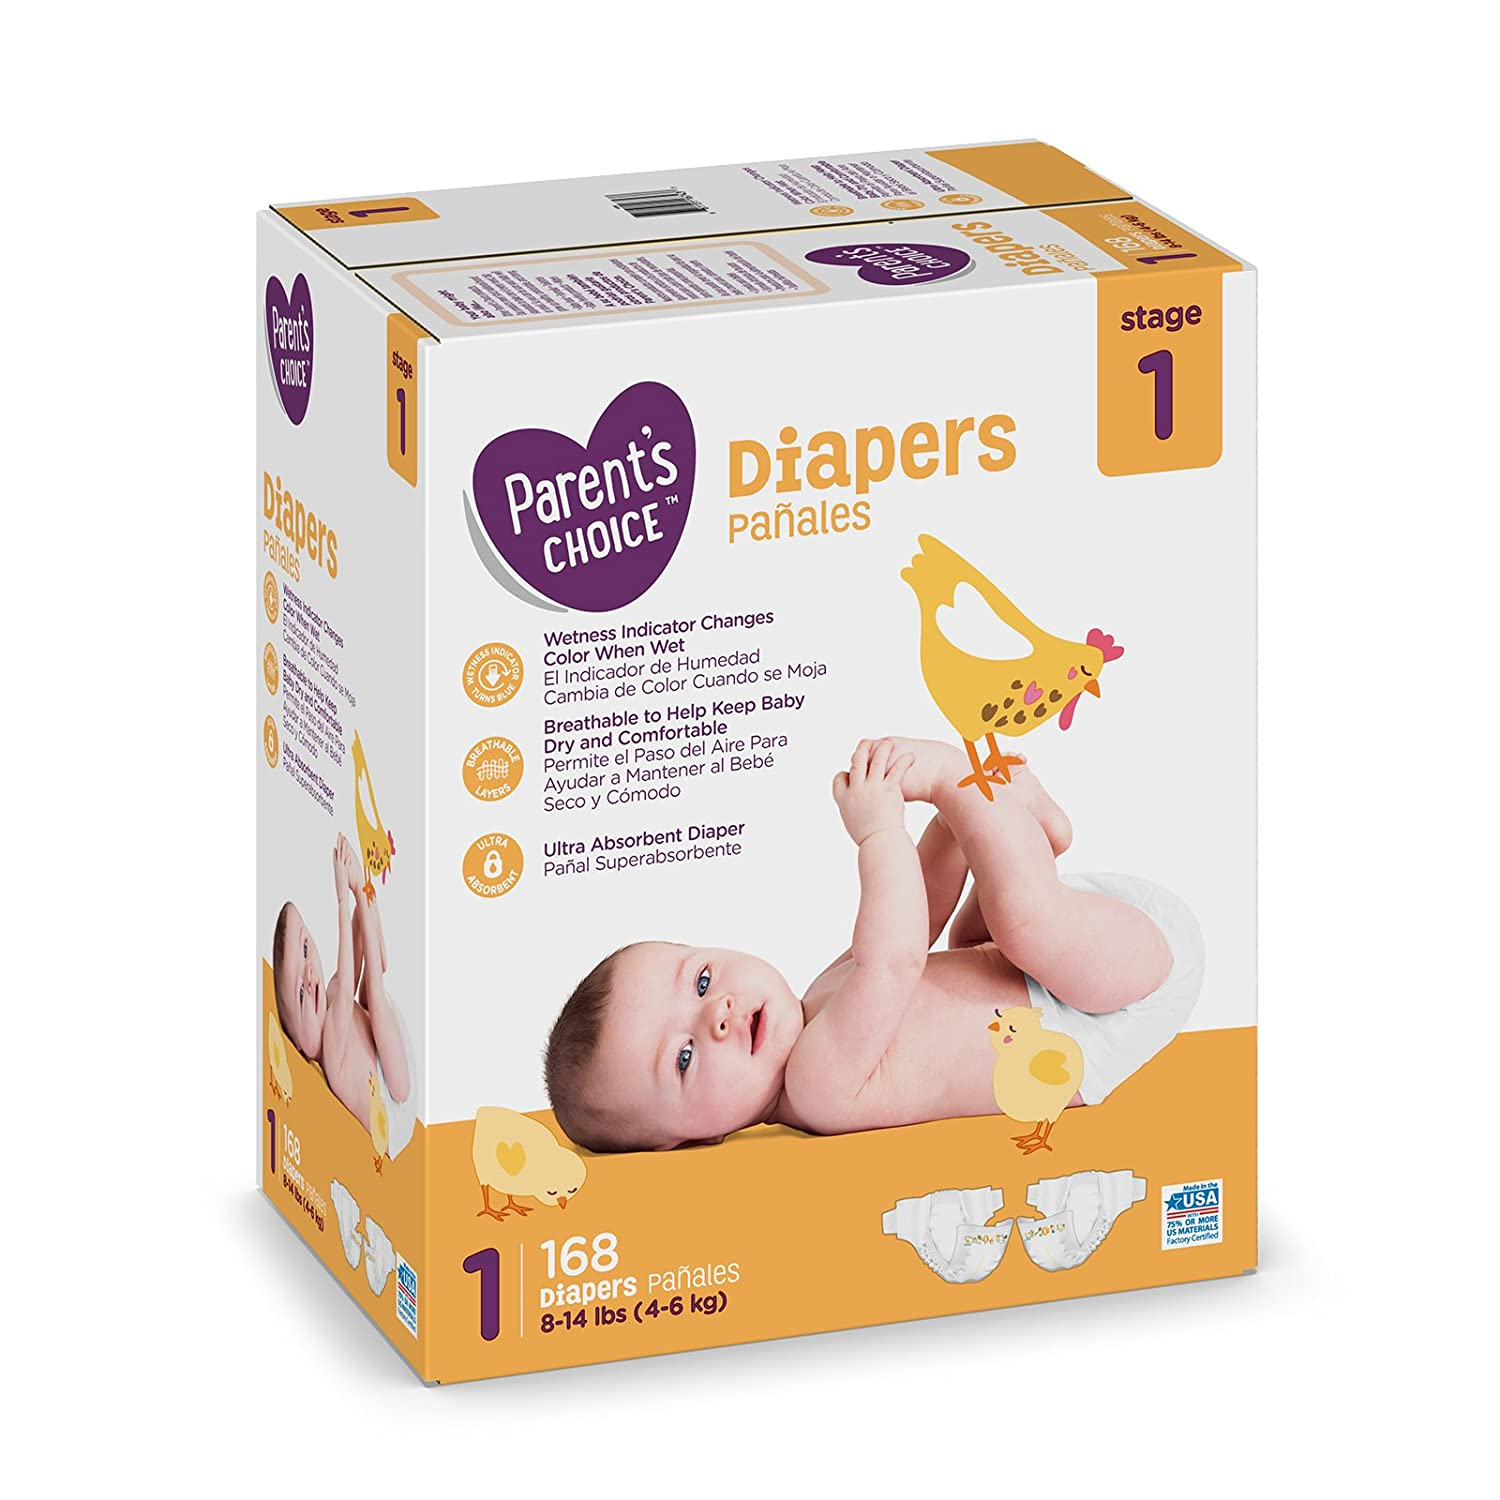 Amazon.com: Branded Parents Choice Diapers, Size 1, 168 Diapers , Weight 8-14lbs - Branded Diapers with fast delivery (Soft and Comfortable for Babies): ...